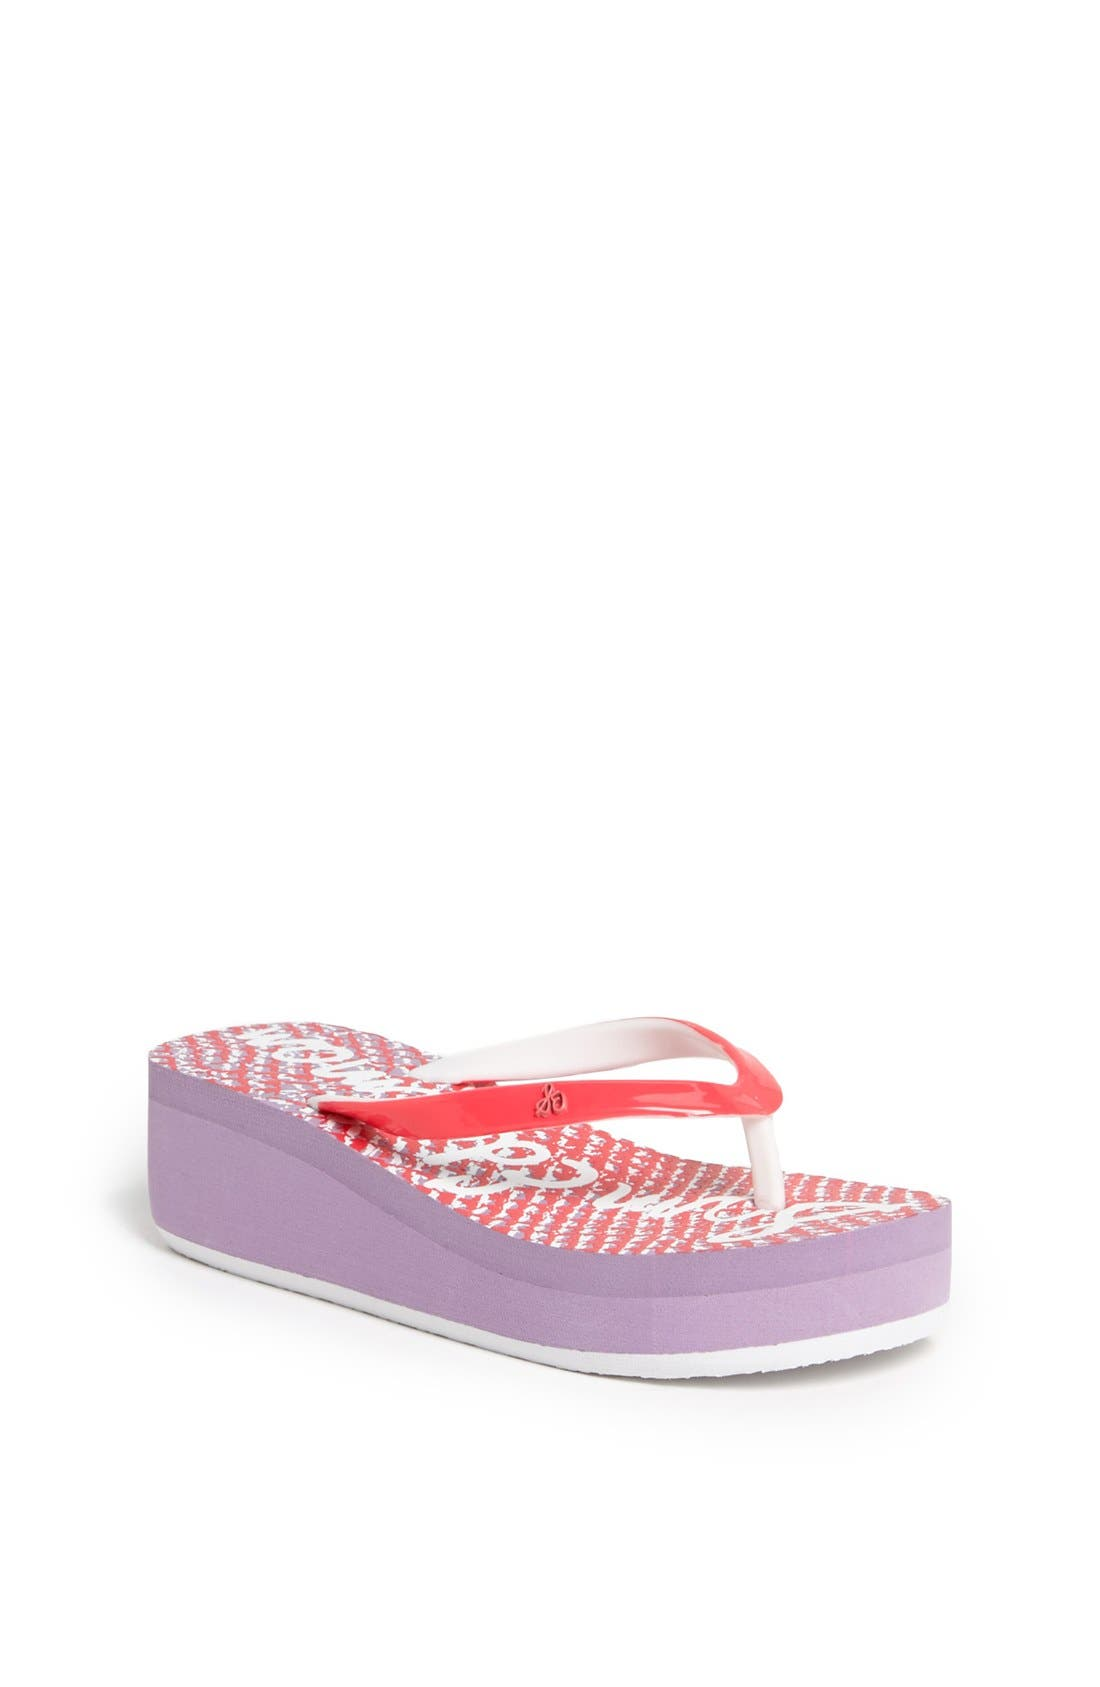 Main Image - Sam Edelman 'Maribelle' Flip Flop (Toddler, Little Kid & Big Kid)